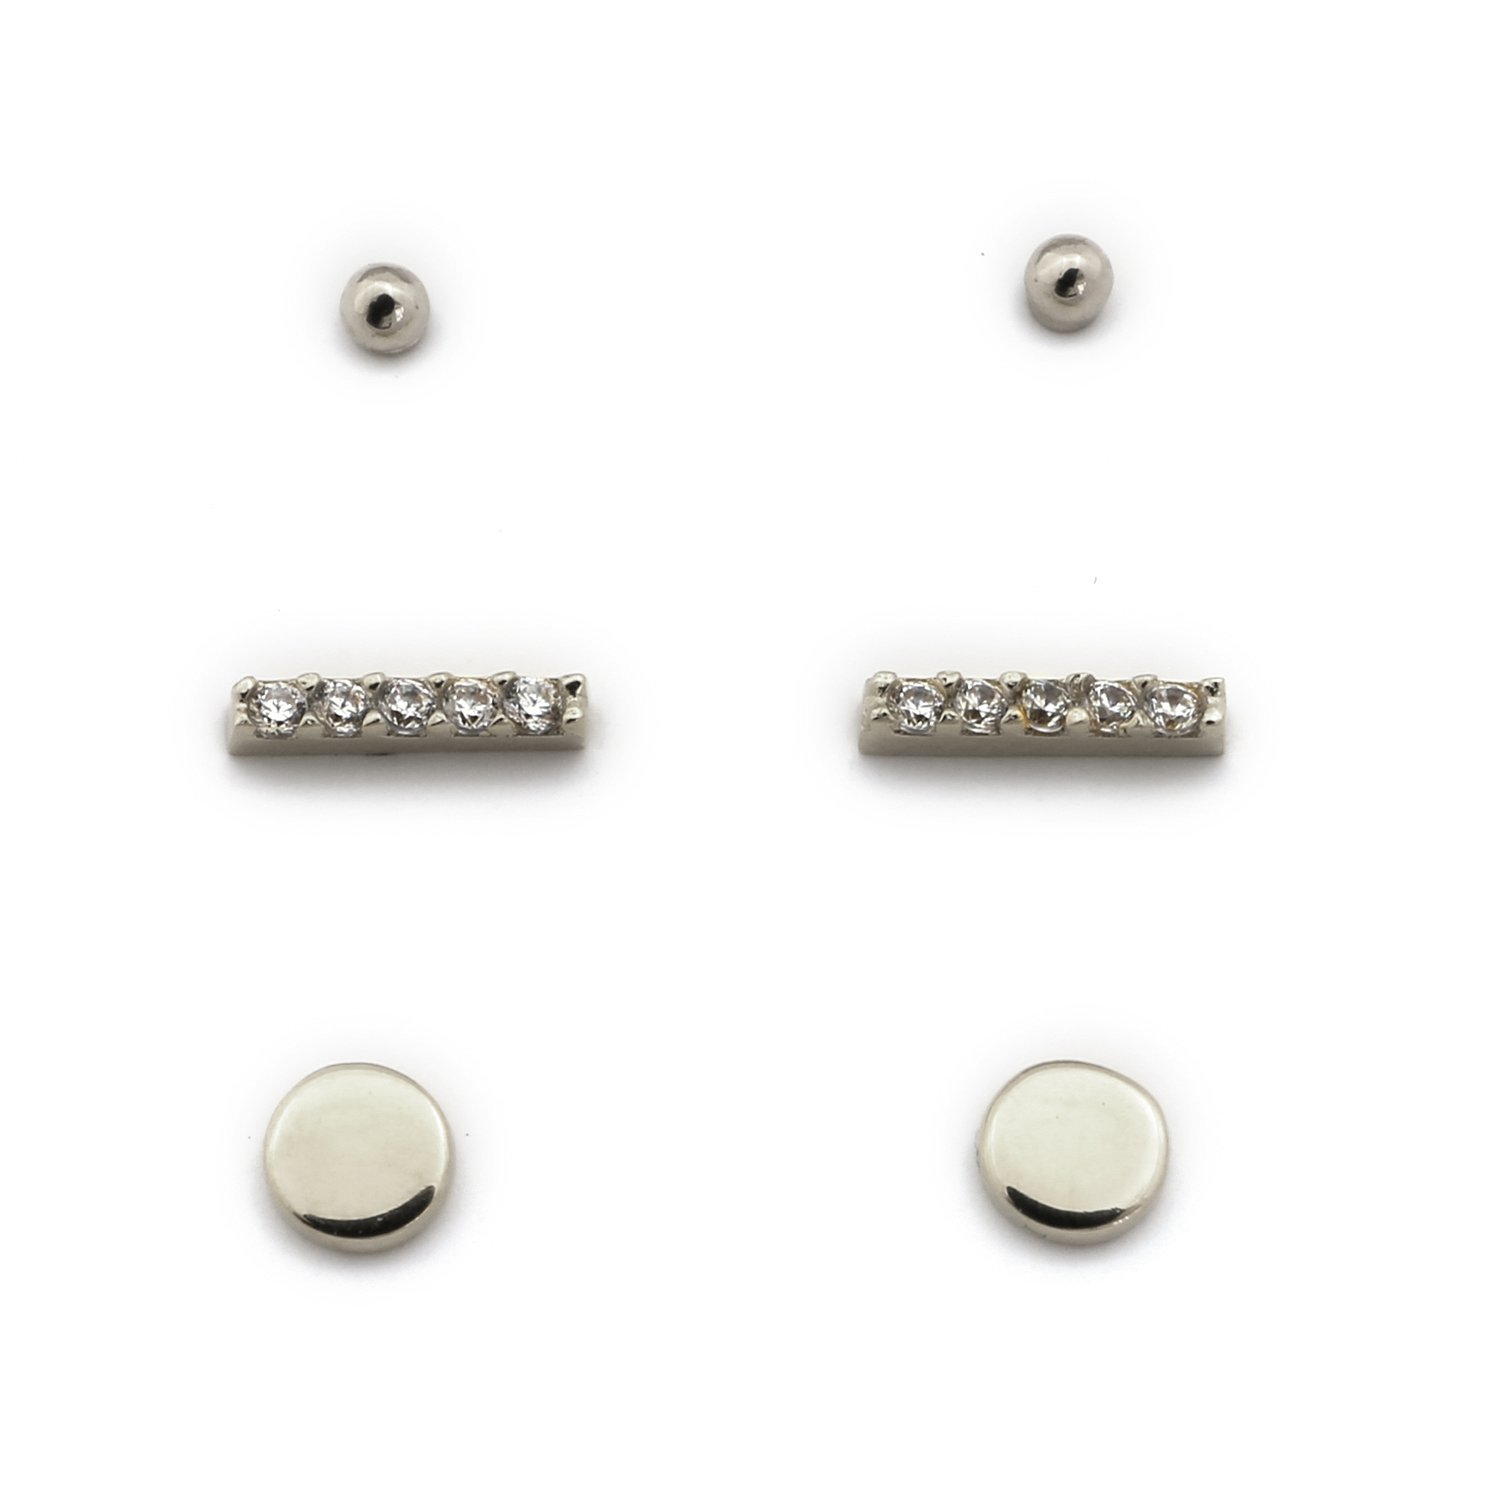 14k Yellow, White or Rose Gold Circle, Cubic Zirconia Bar and 2mm Ball Stud Earrings Set